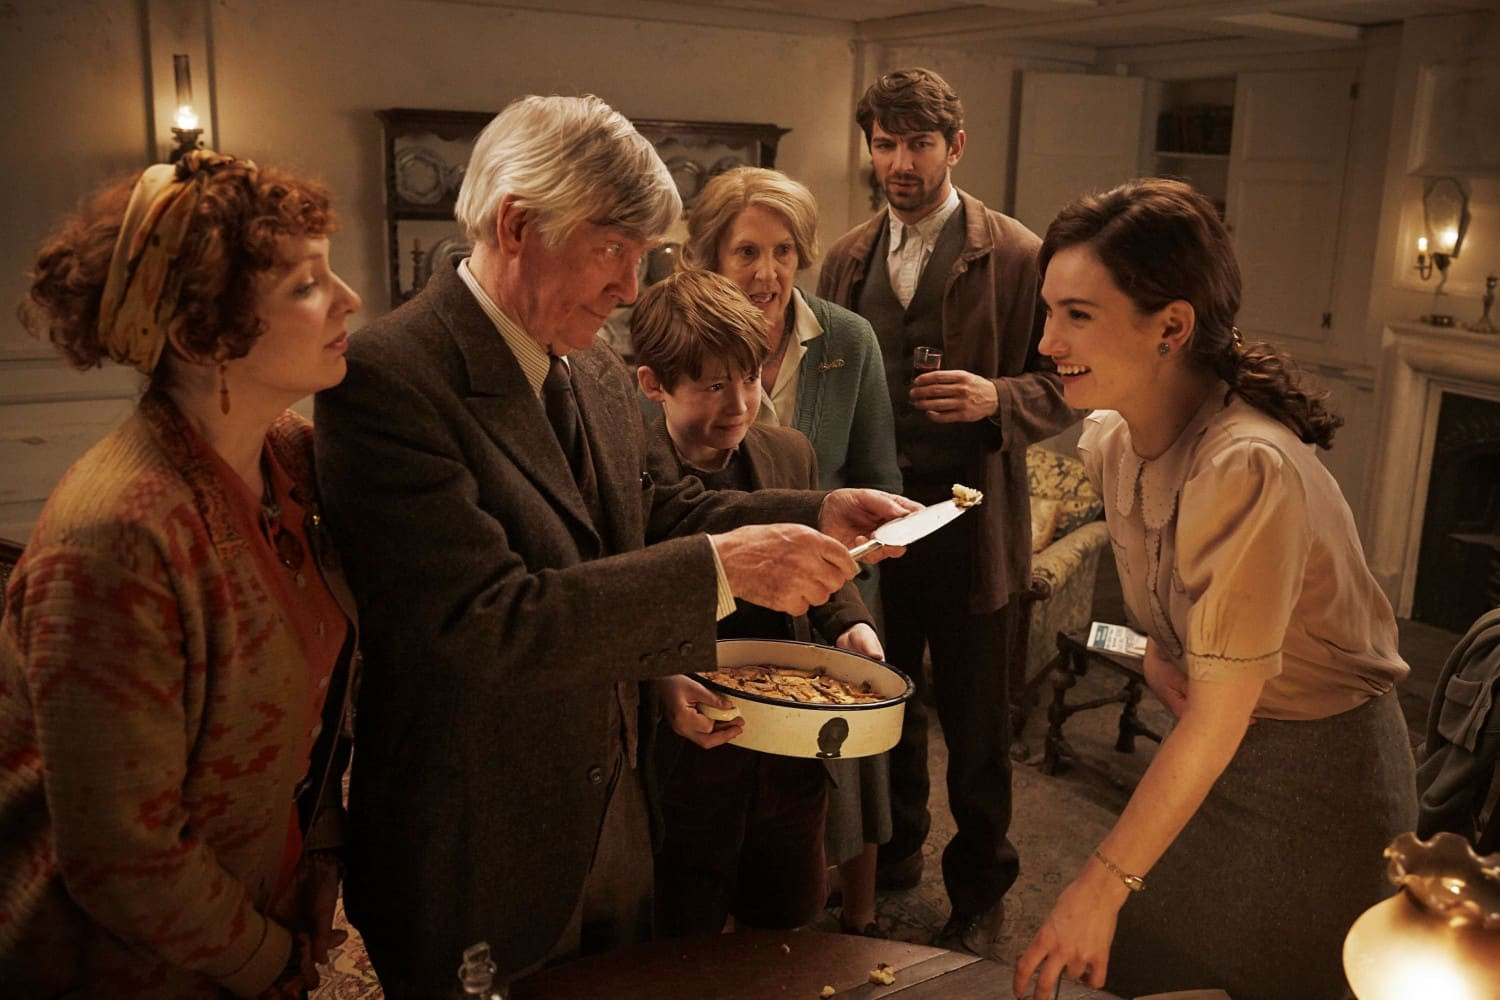 Guernsey Literary And Potato Peel Pie Society  The Guernsey Literary and Potato Peel Pie Society in